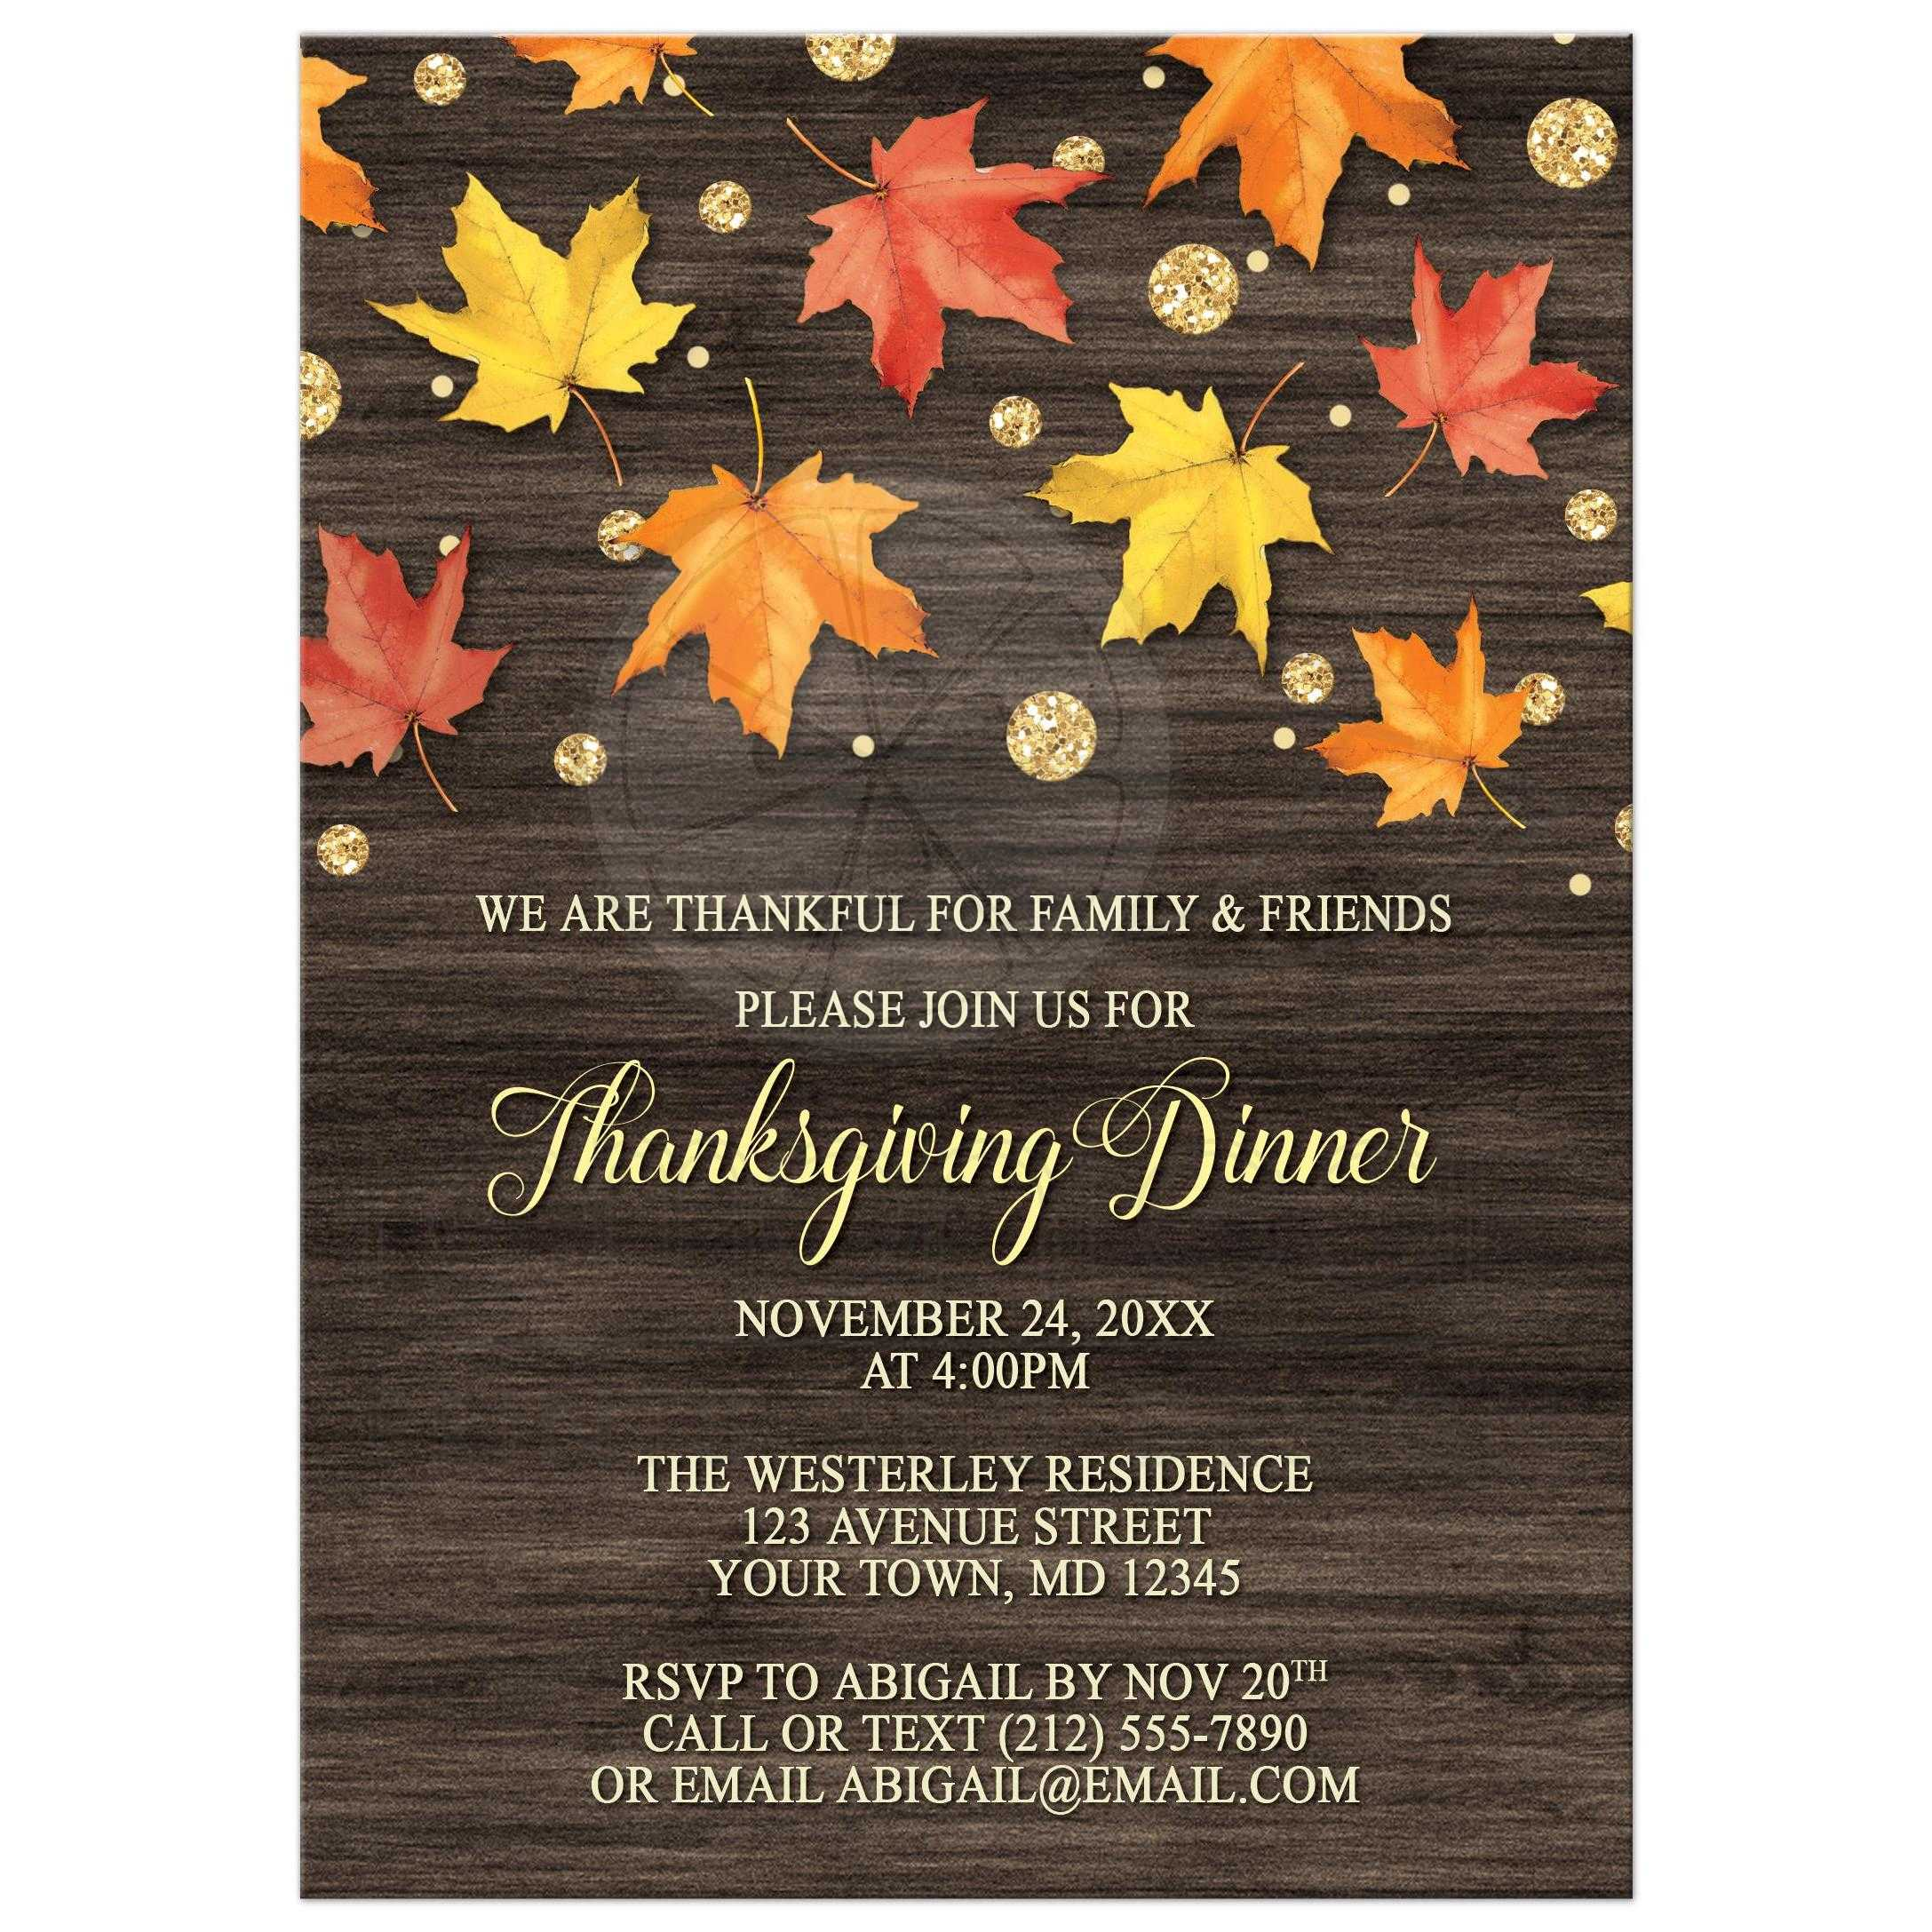 Invitations Falling Leaves With Gold Autumn - Thanksgiving party invitation templates